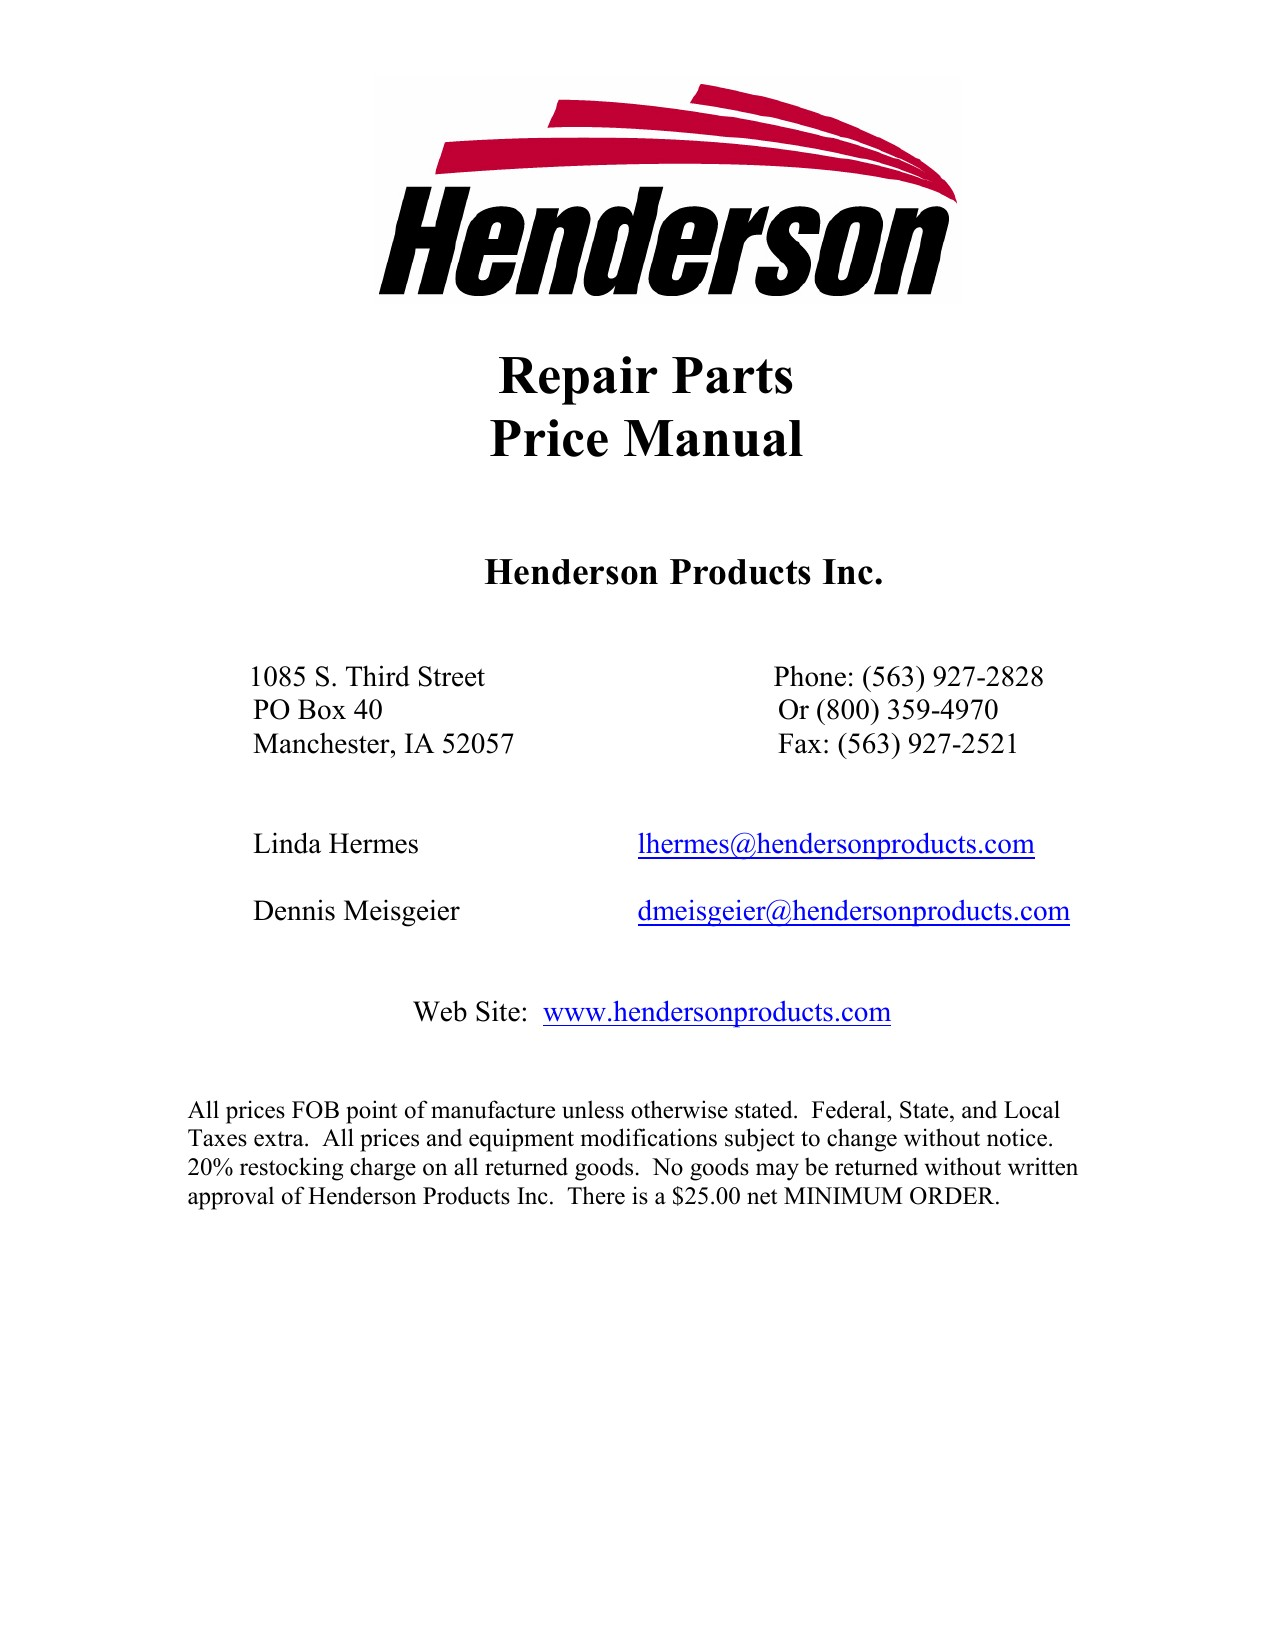 Repair Parts Price Manual Henderson Products Inc